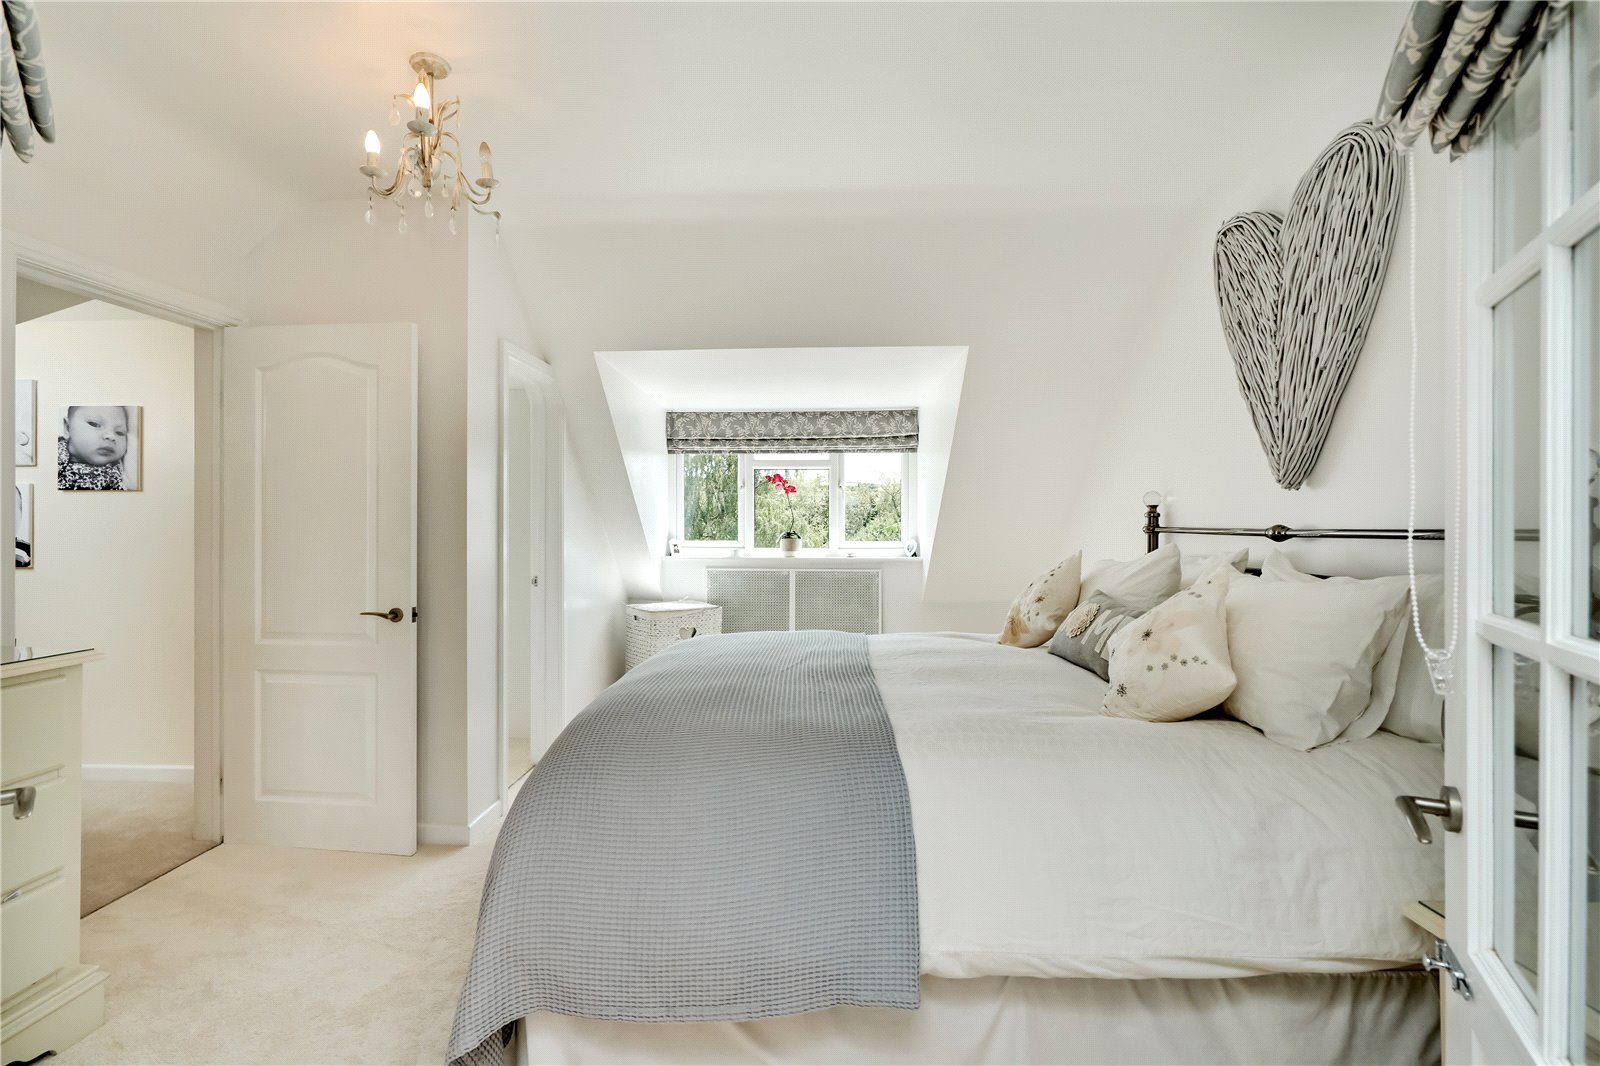 4 bed house for sale in Welwyn, AL6 0QG  - Property Image 19